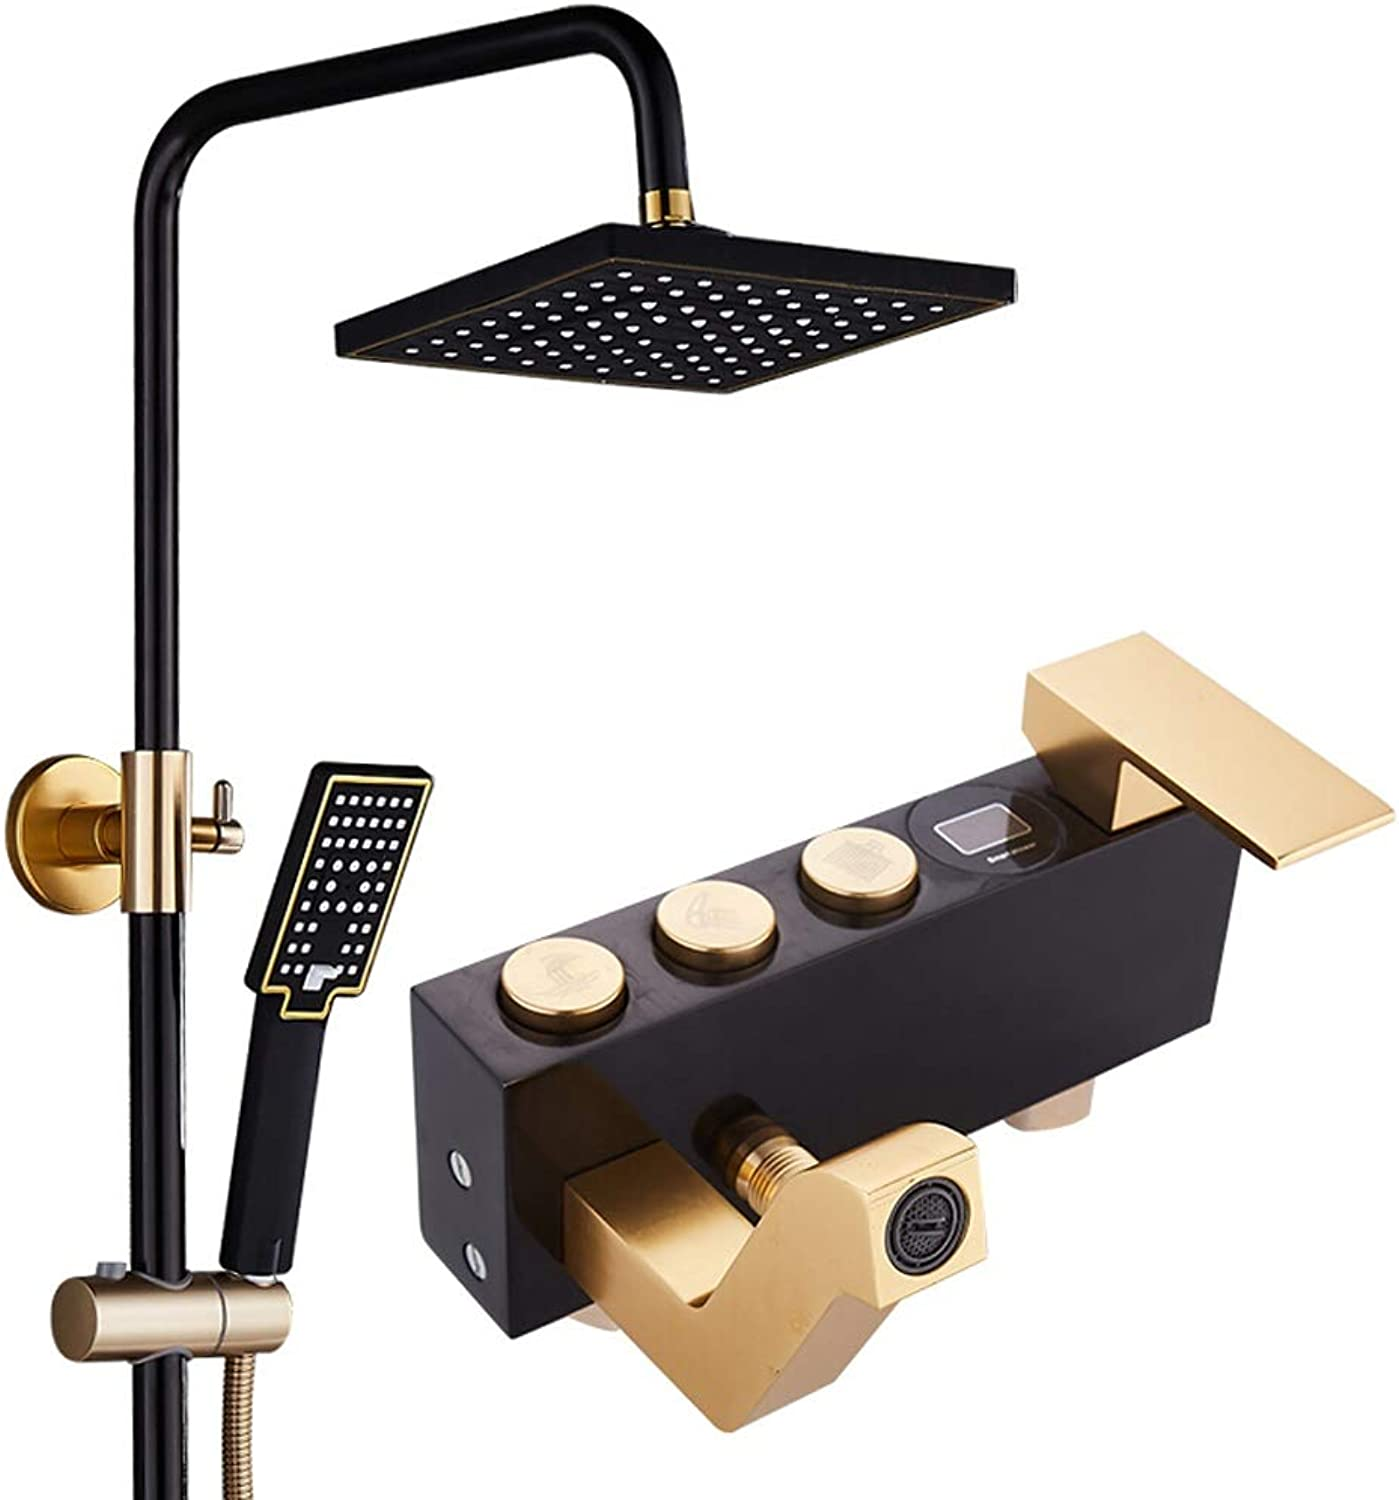 JCOCO European style Black golden Shower System, with 8  Rain Showerhead,3-Function Faucet, Adjustable Slide Bar, Polished Chrome Finish (Size   A)